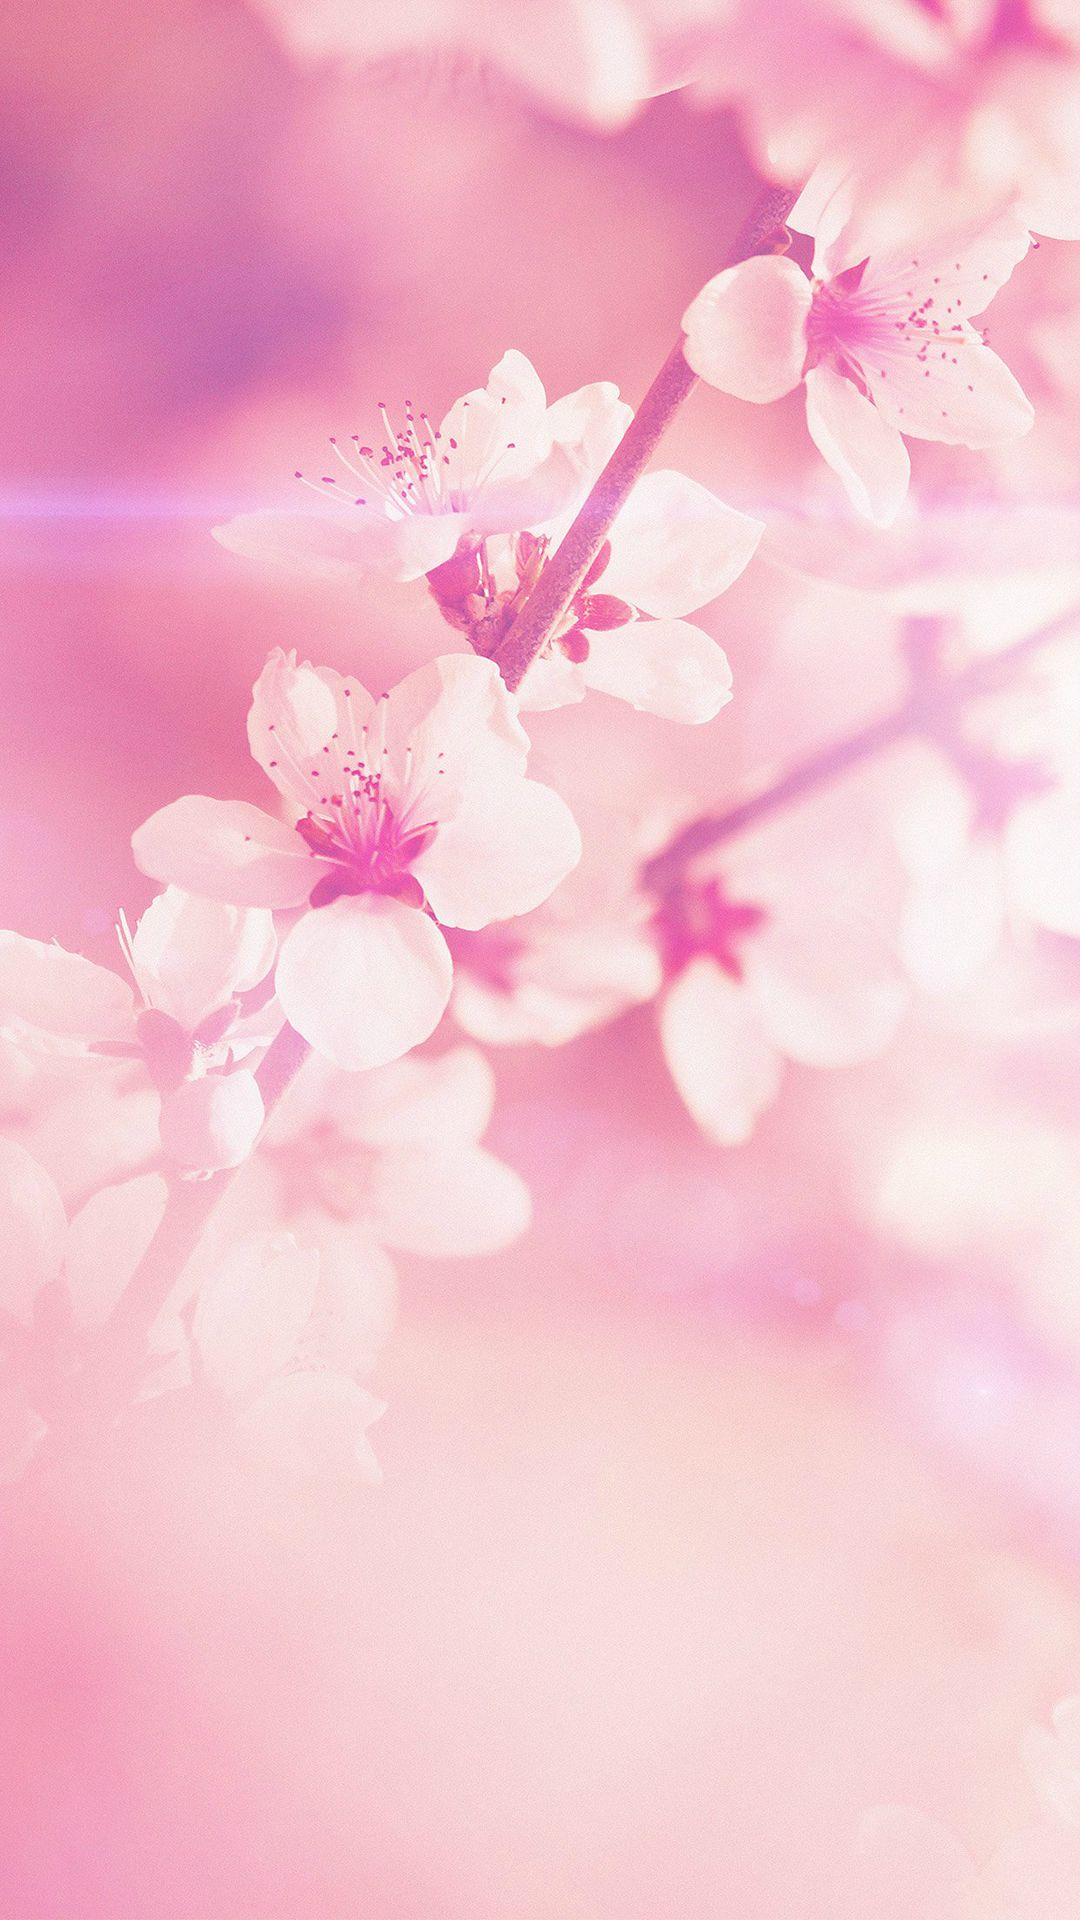 Pictures of flowers for cell phone | Flower backgrounds ...